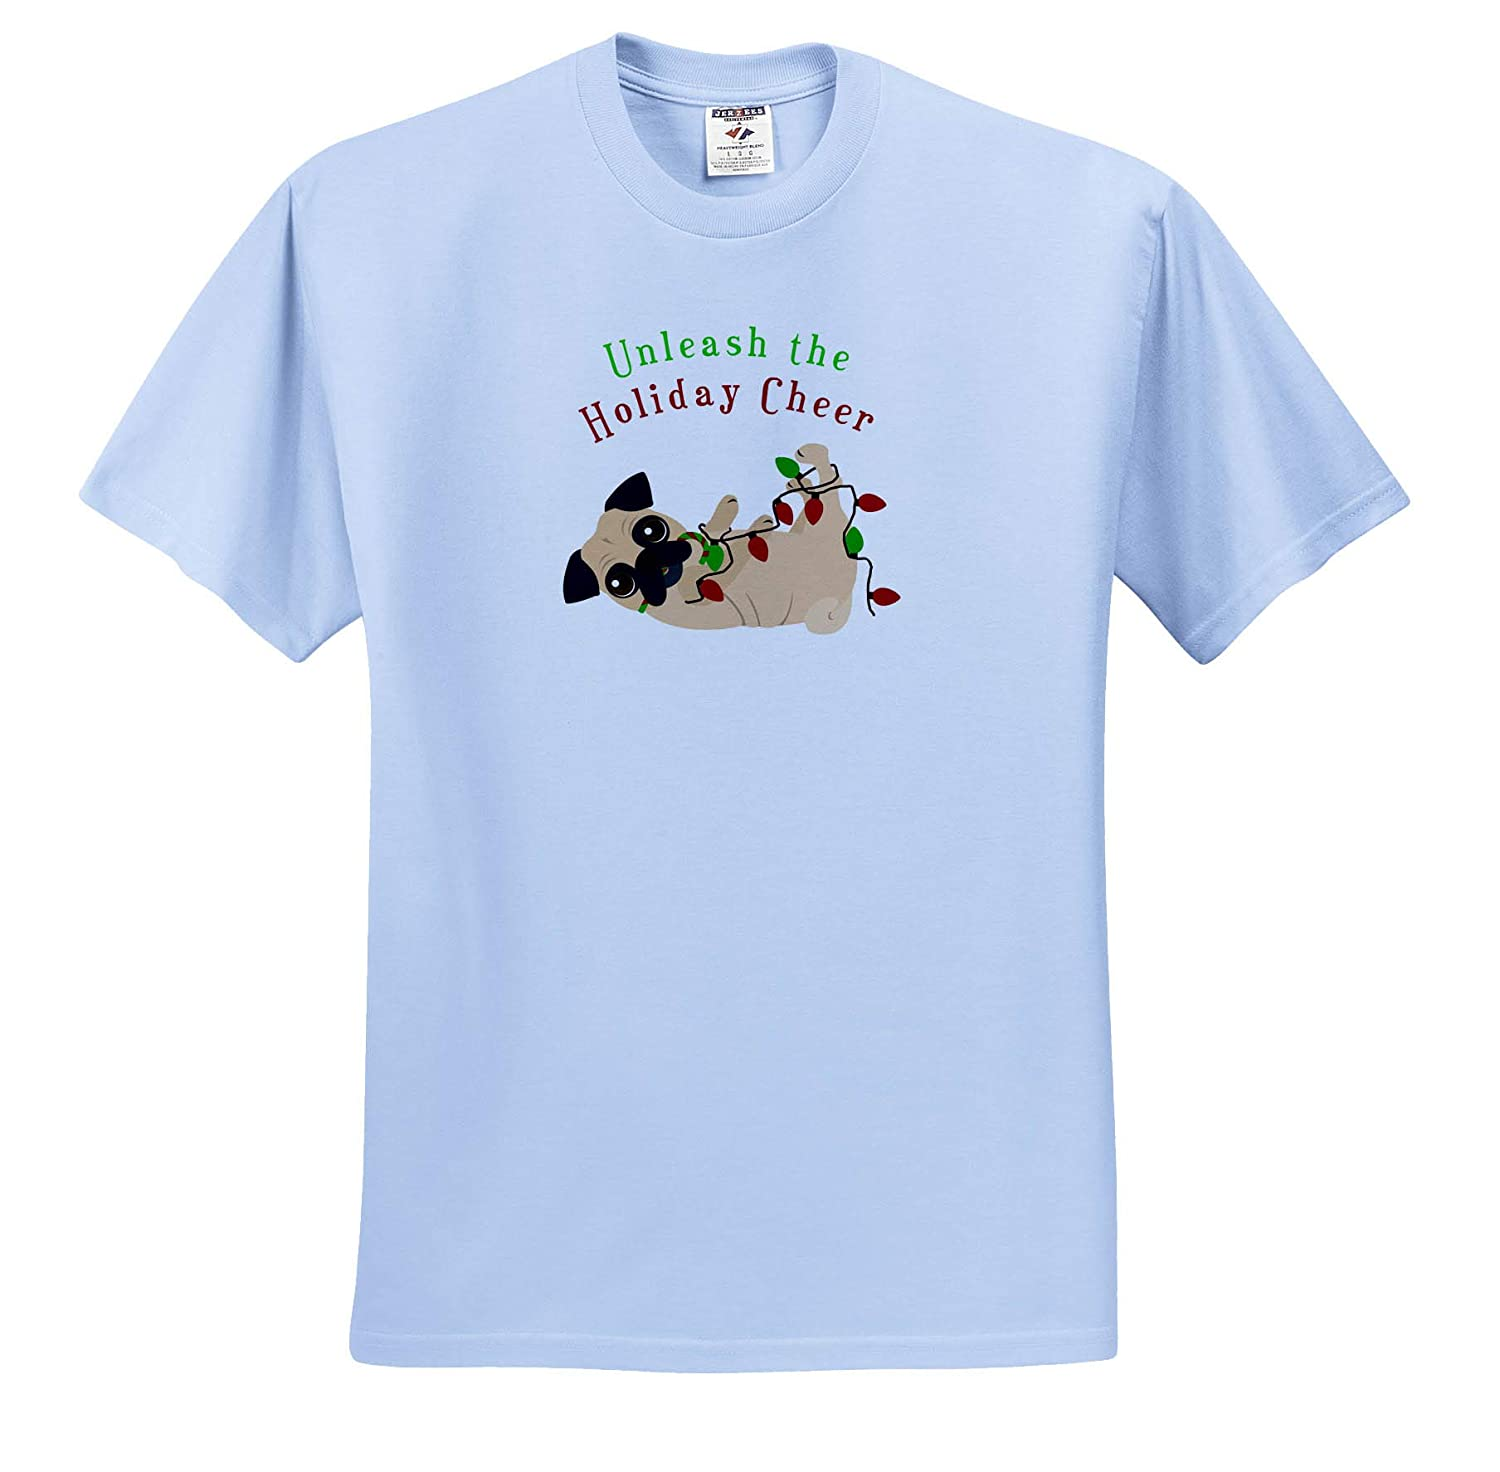 Cute Pug 3dRose Janna Salak Designs Christmas Adult T-Shirt XL Unleash The Holiday Cheer ts/_310739